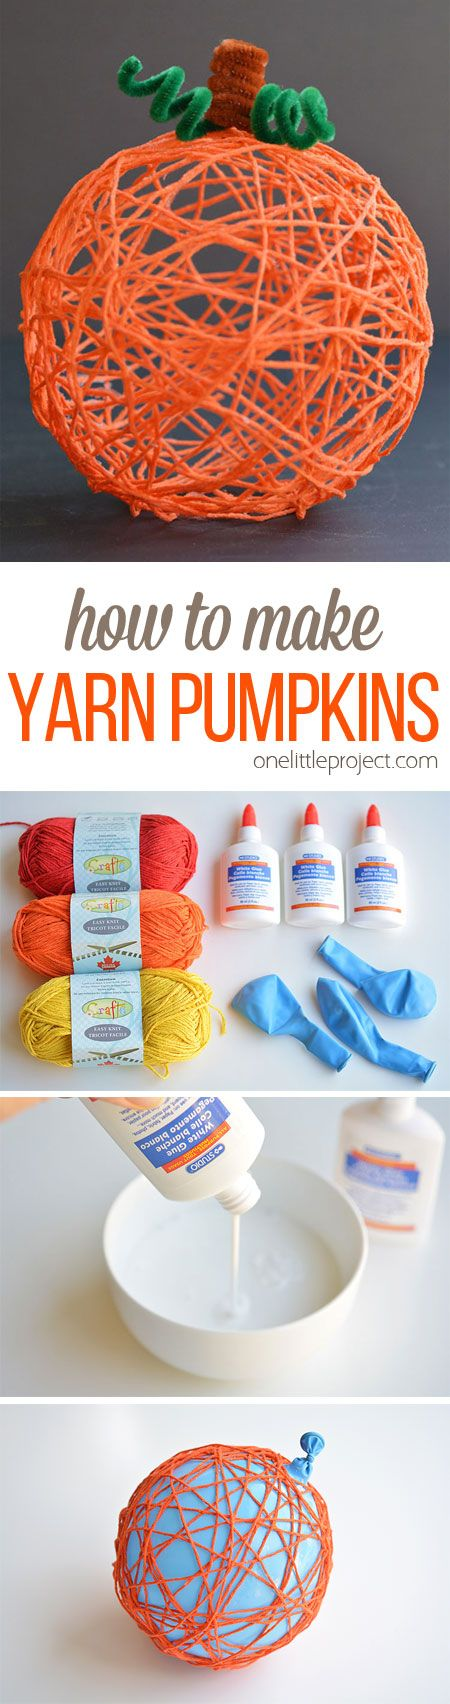 How to Make Yarn Pumpkin for Halloween